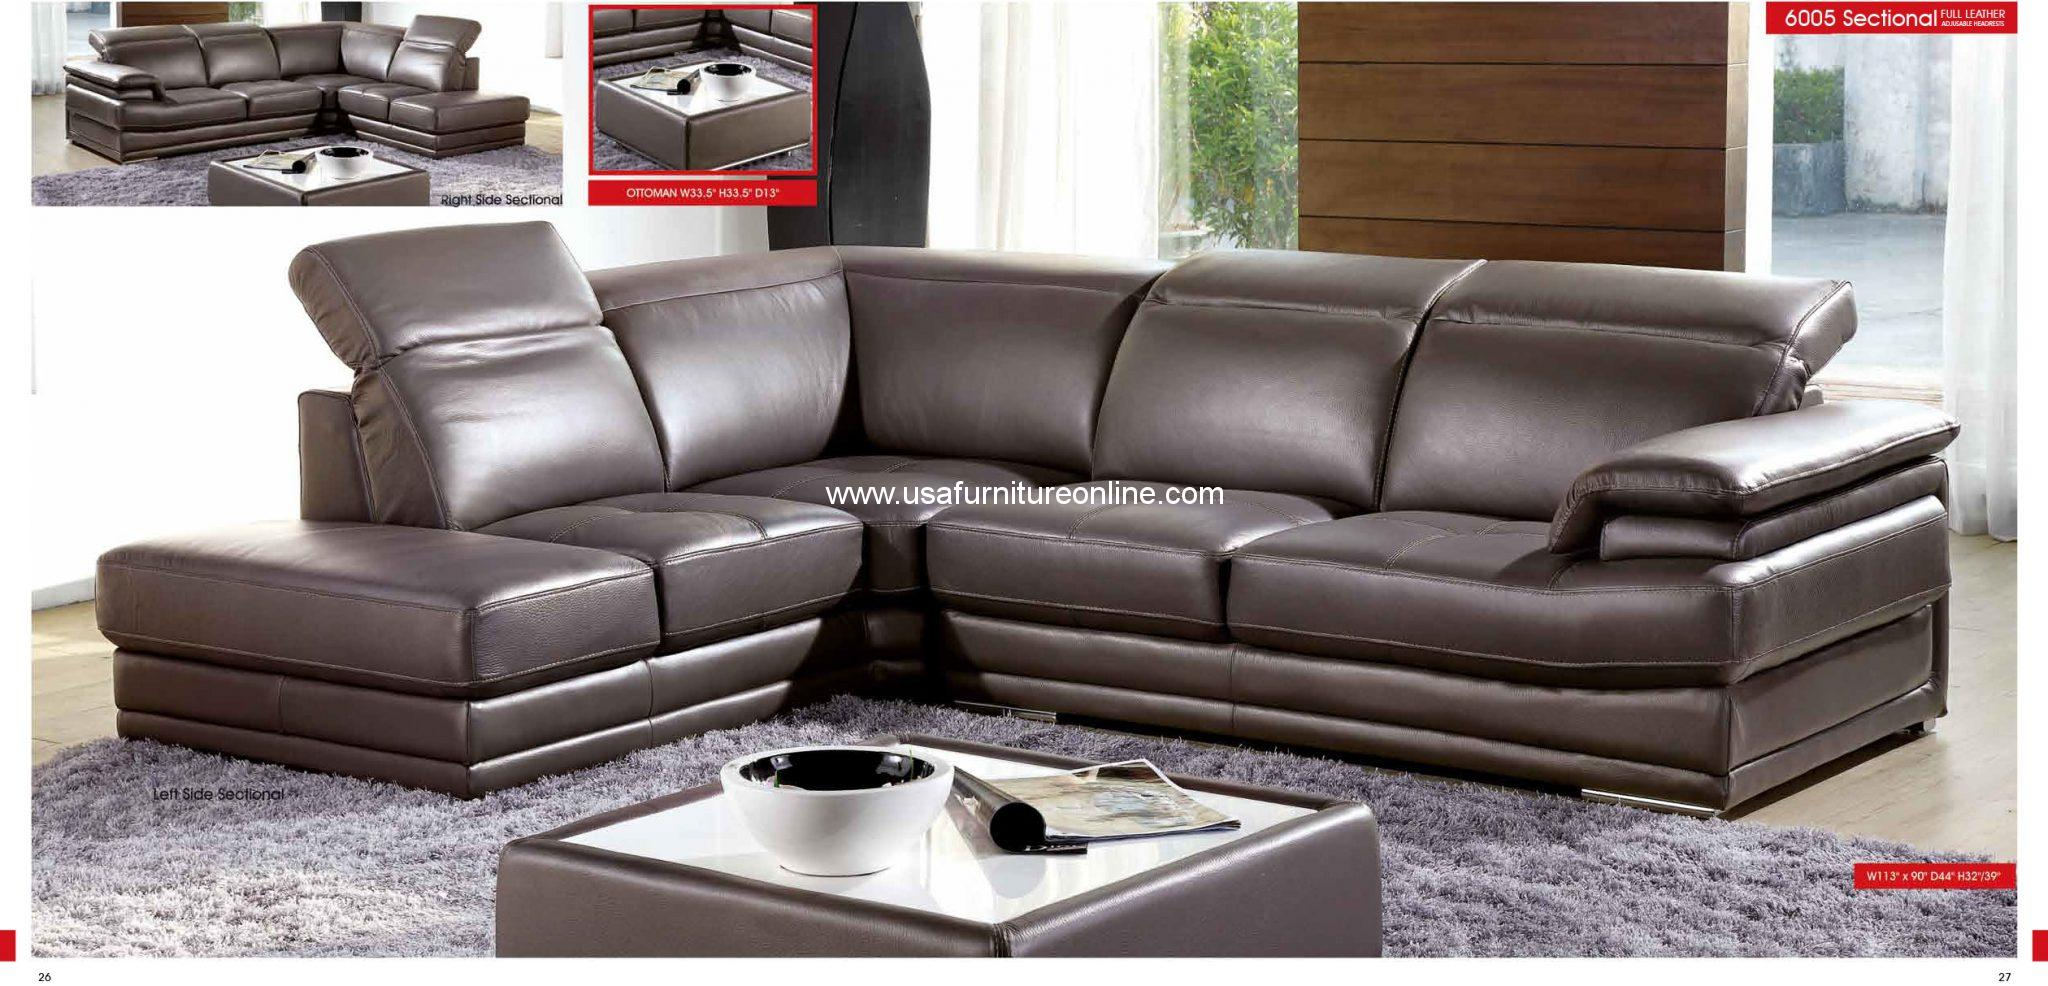 Stupendous Esf Modern 6005 Grey Genuine Italian Leather Sectional Set Unemploymentrelief Wooden Chair Designs For Living Room Unemploymentrelieforg